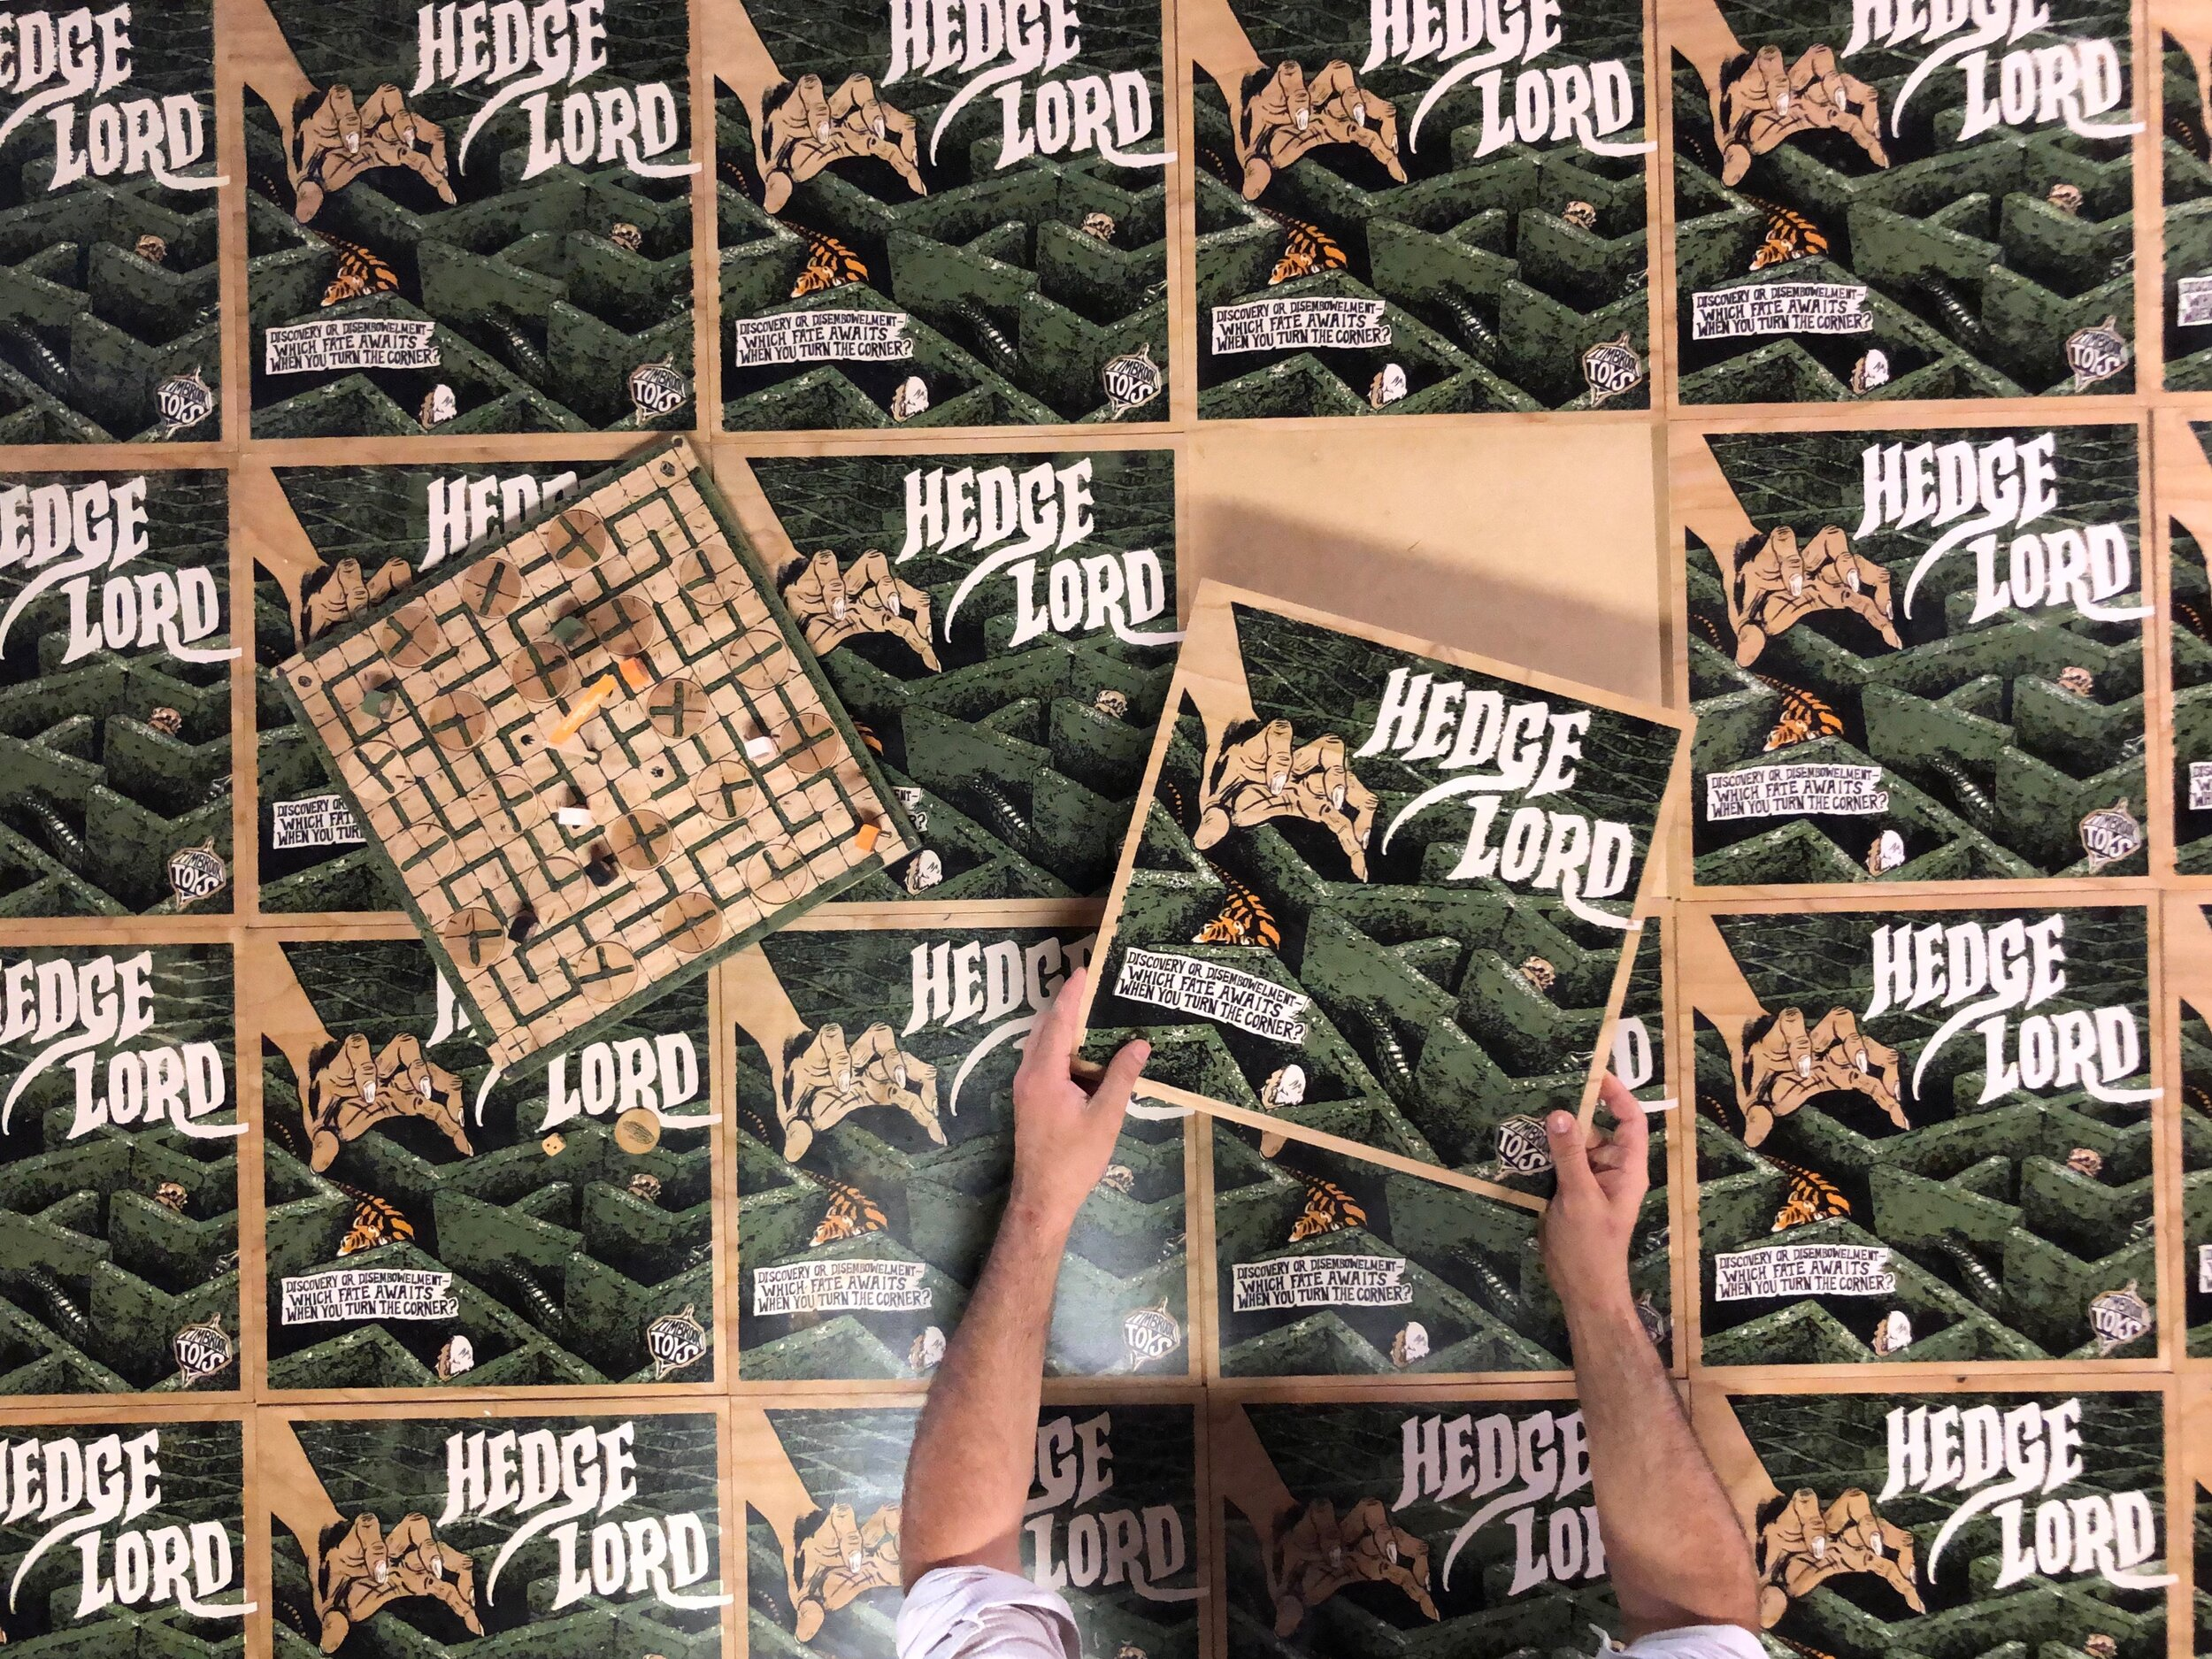 Hedge Lord - Grid of game lids